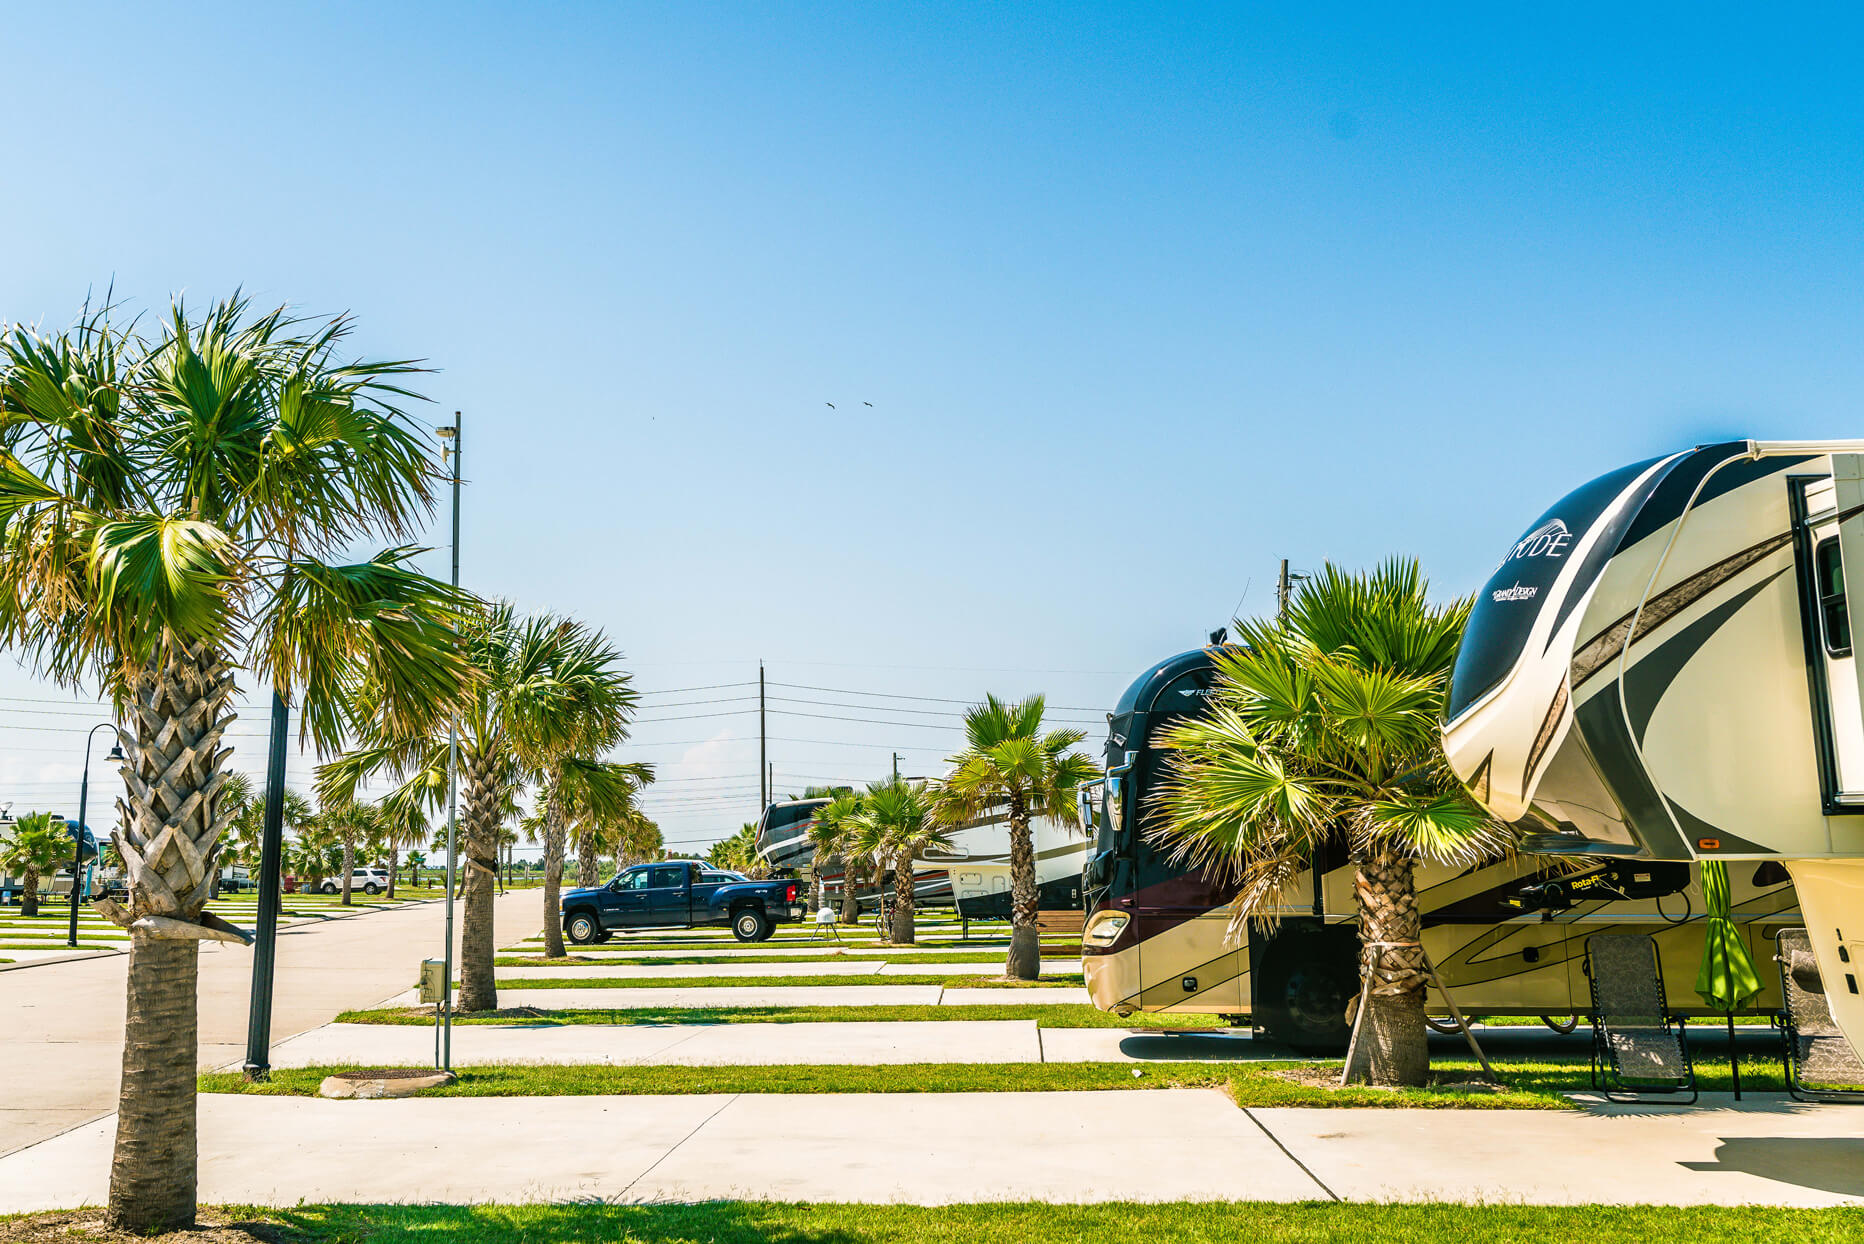 RV sites with palm trees at our Galveston RV park - Stella Mare RV Resort